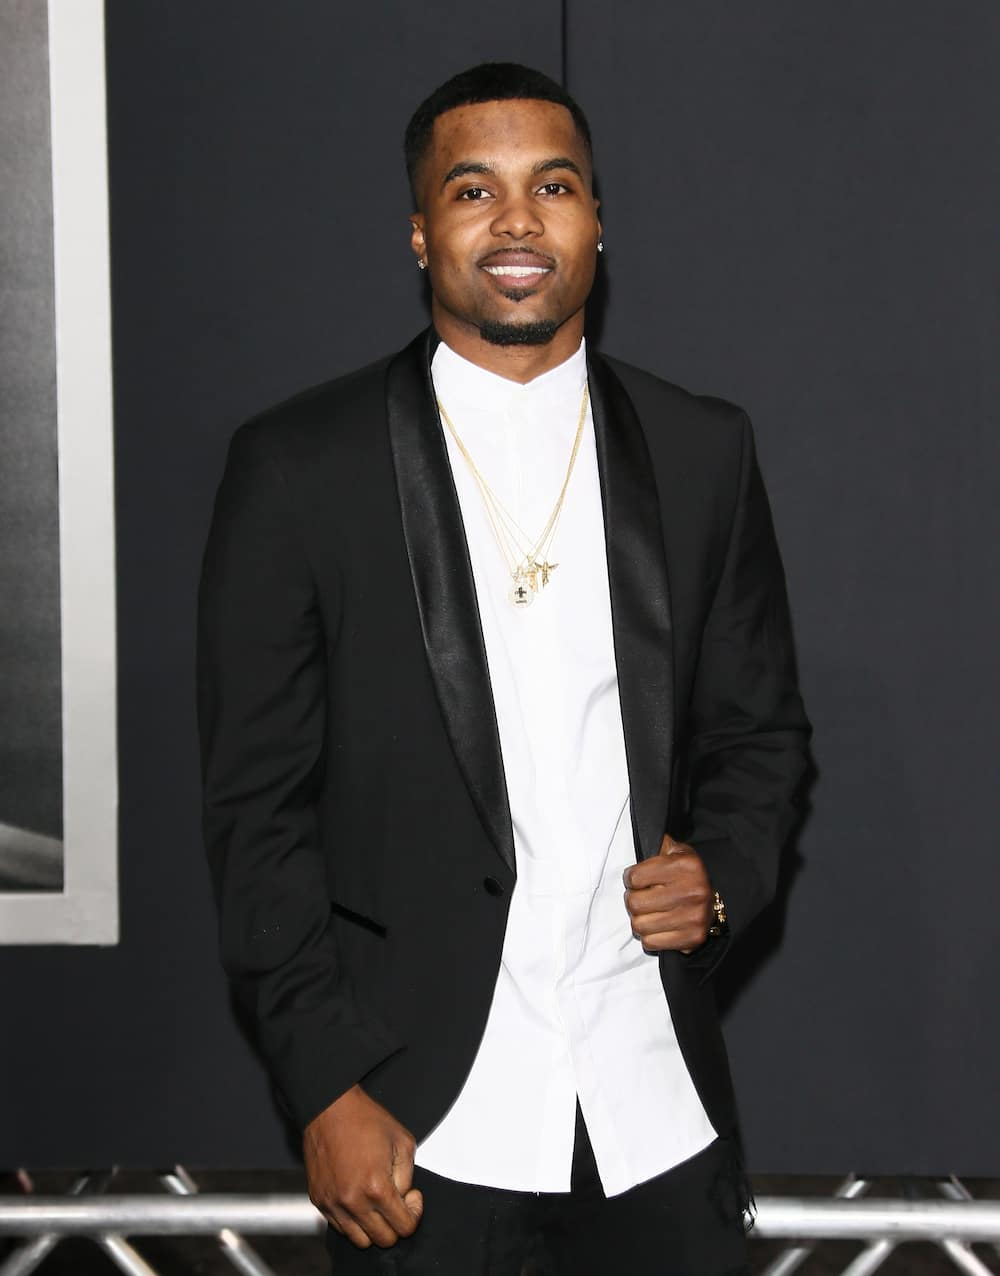 Who is Steelo Brim?